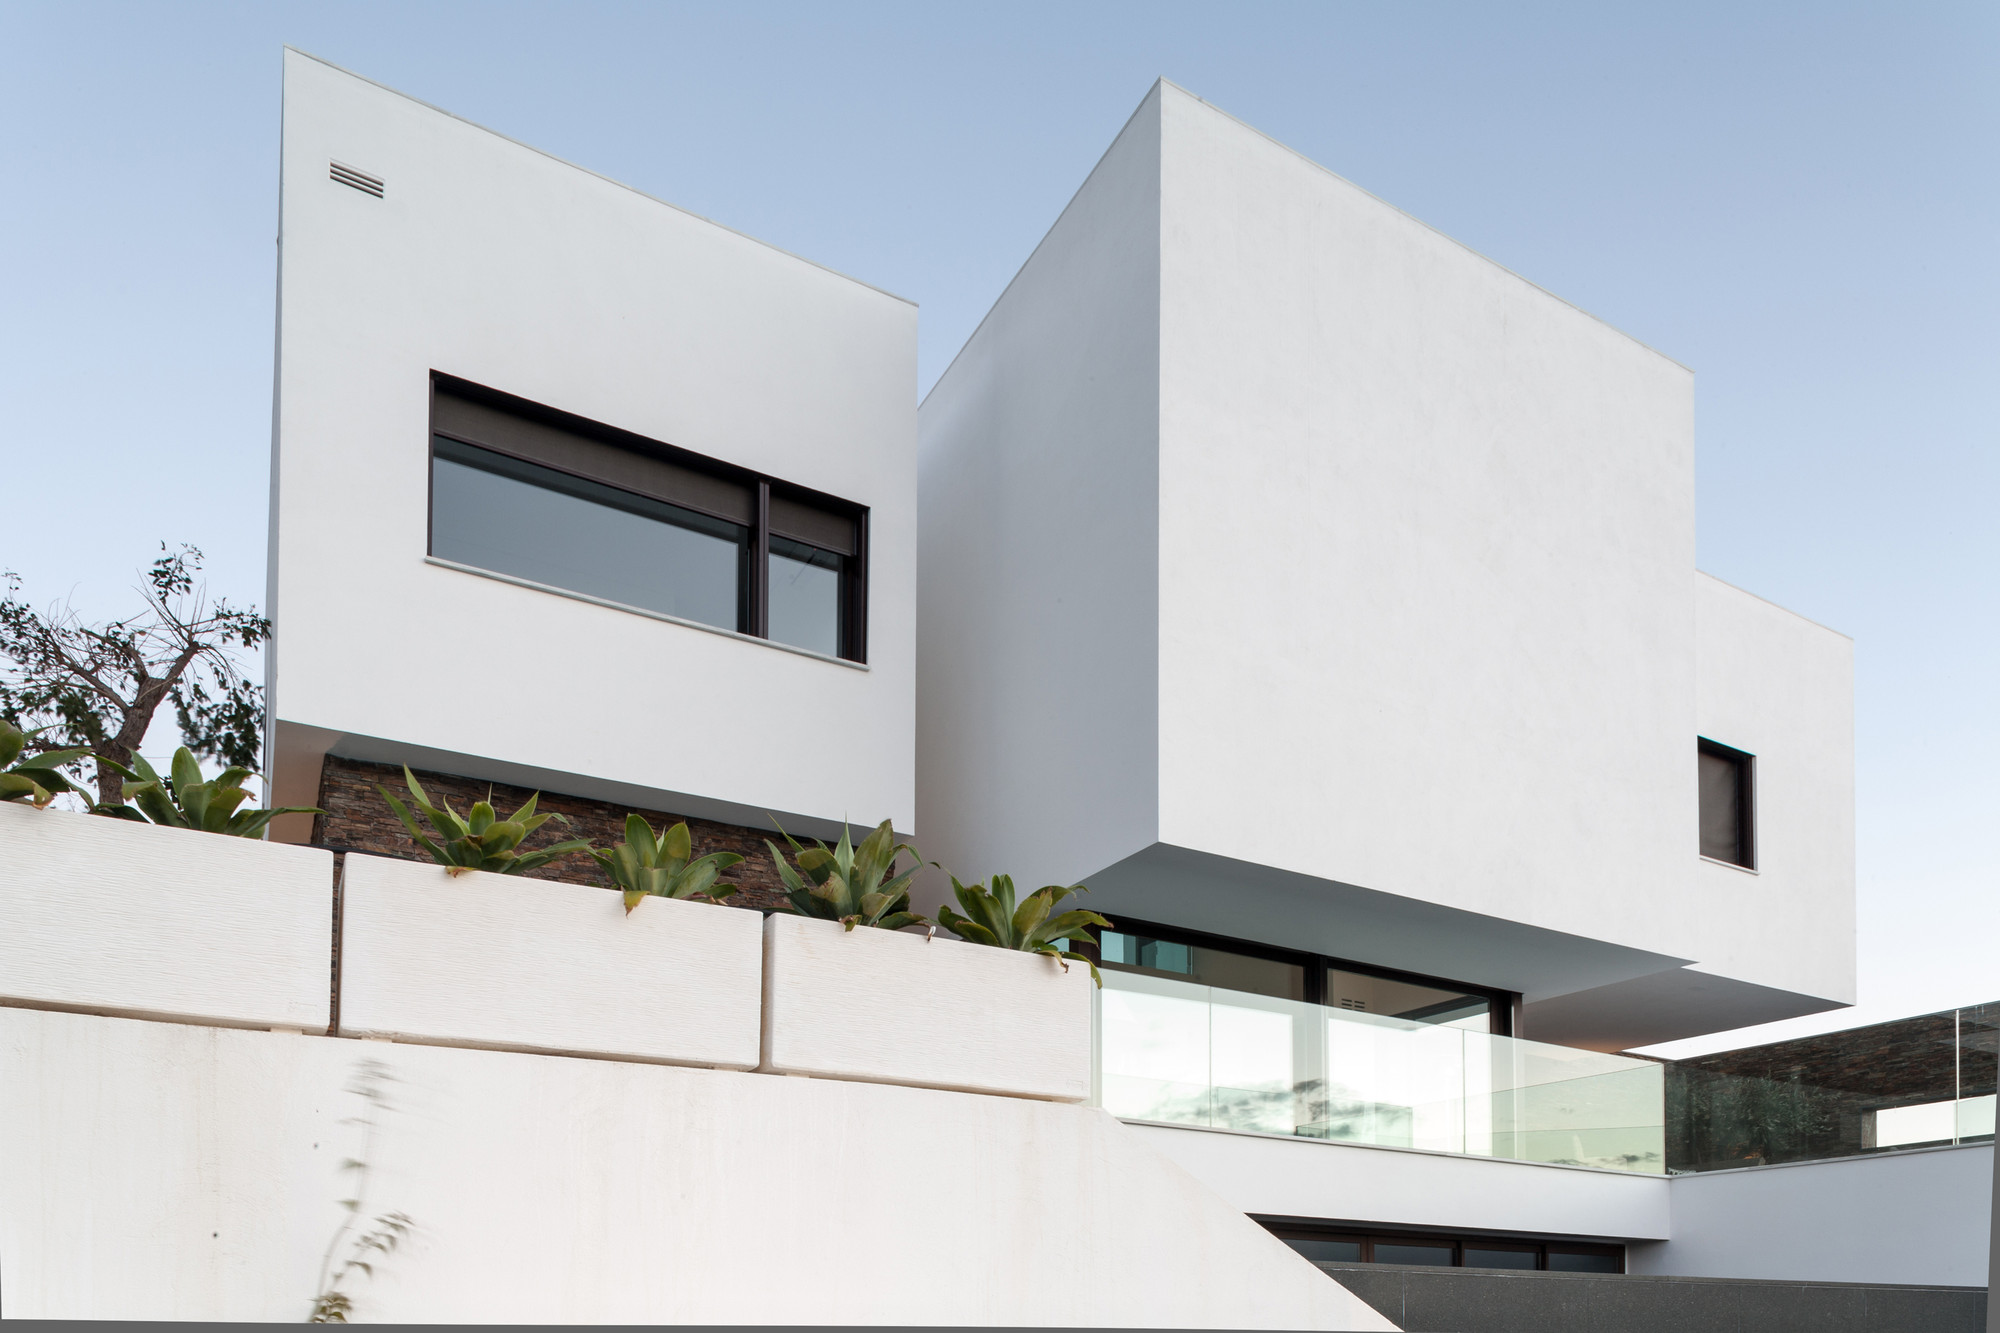 AP House / MVN Arquitectos, Courtesy of MVN Arquitectos